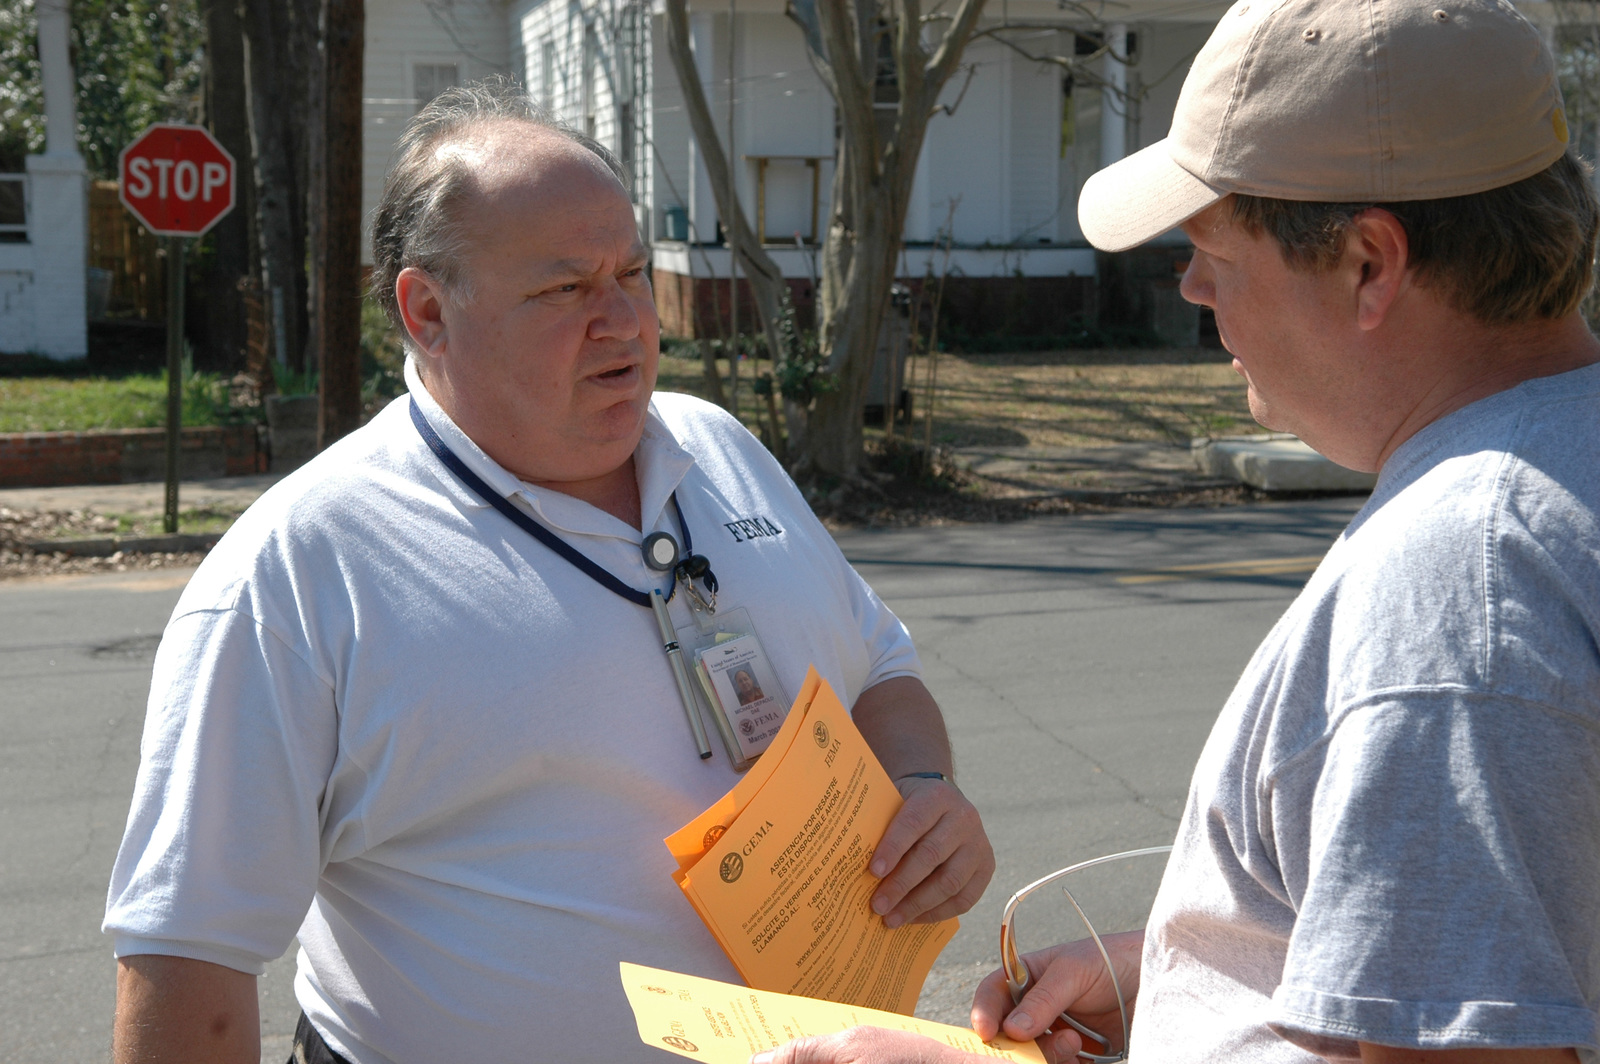 [Severe Storms and Tornadoes] Americus, GA, March 8, 2007 -- FEMA Community Relations (CR) representative Mickey DePaolo speaks with a resident affected by the Georgia tornadoes.  CR personnel go door to door to educate residents about  FEMA programs.  Mark Wolfe/FEMA